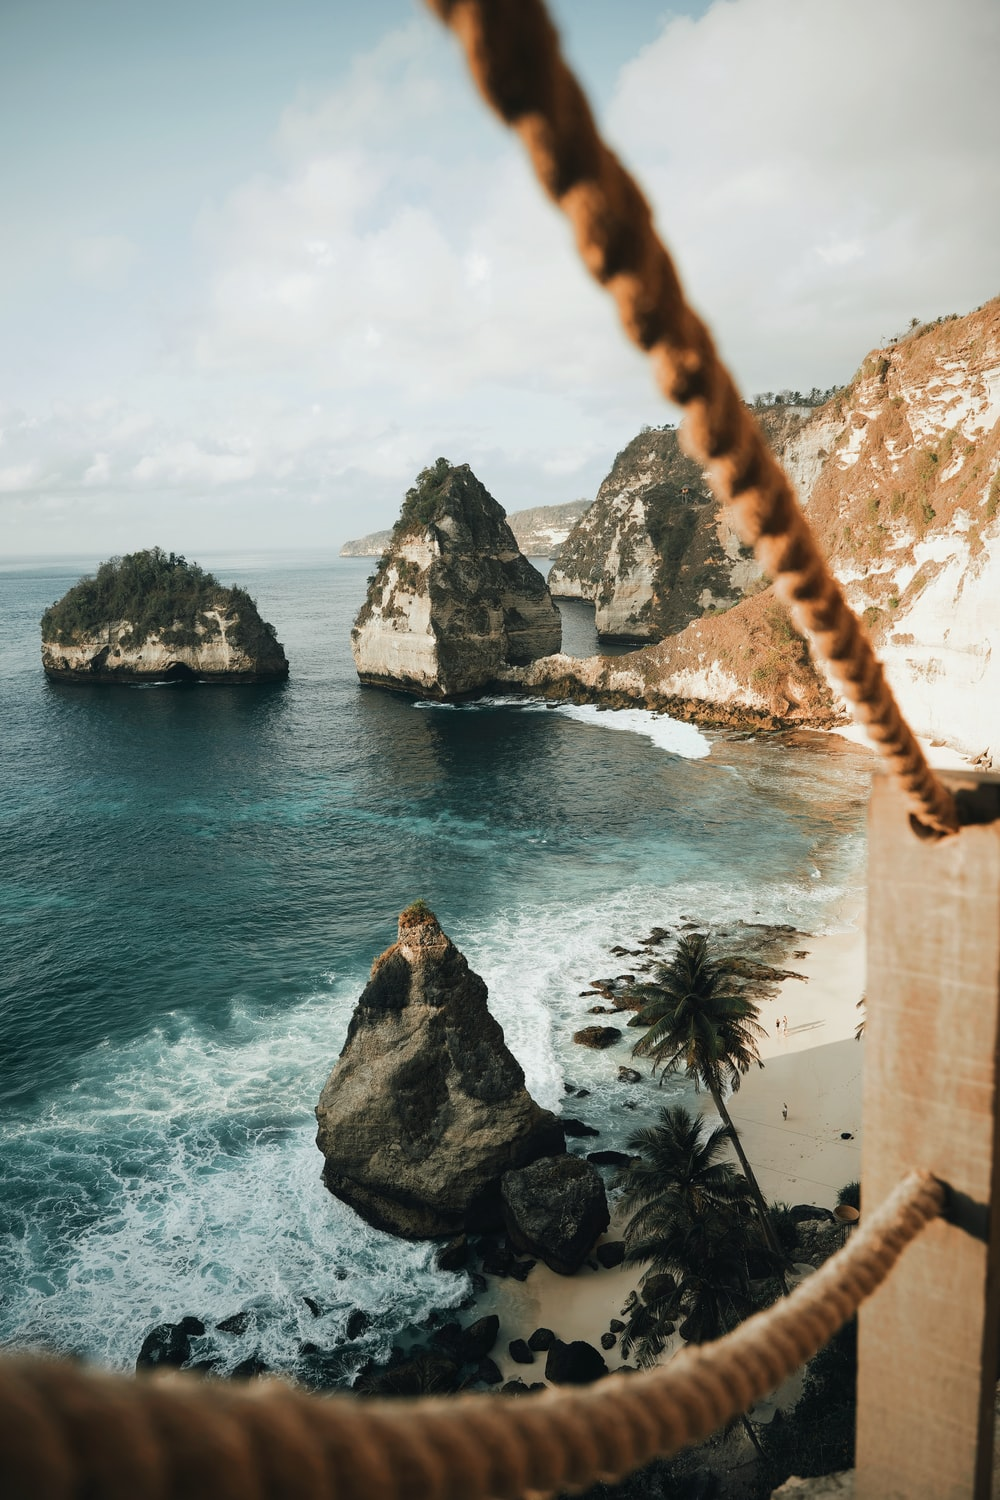 wide-angle photography of mountain cliff beside seashore during daytime